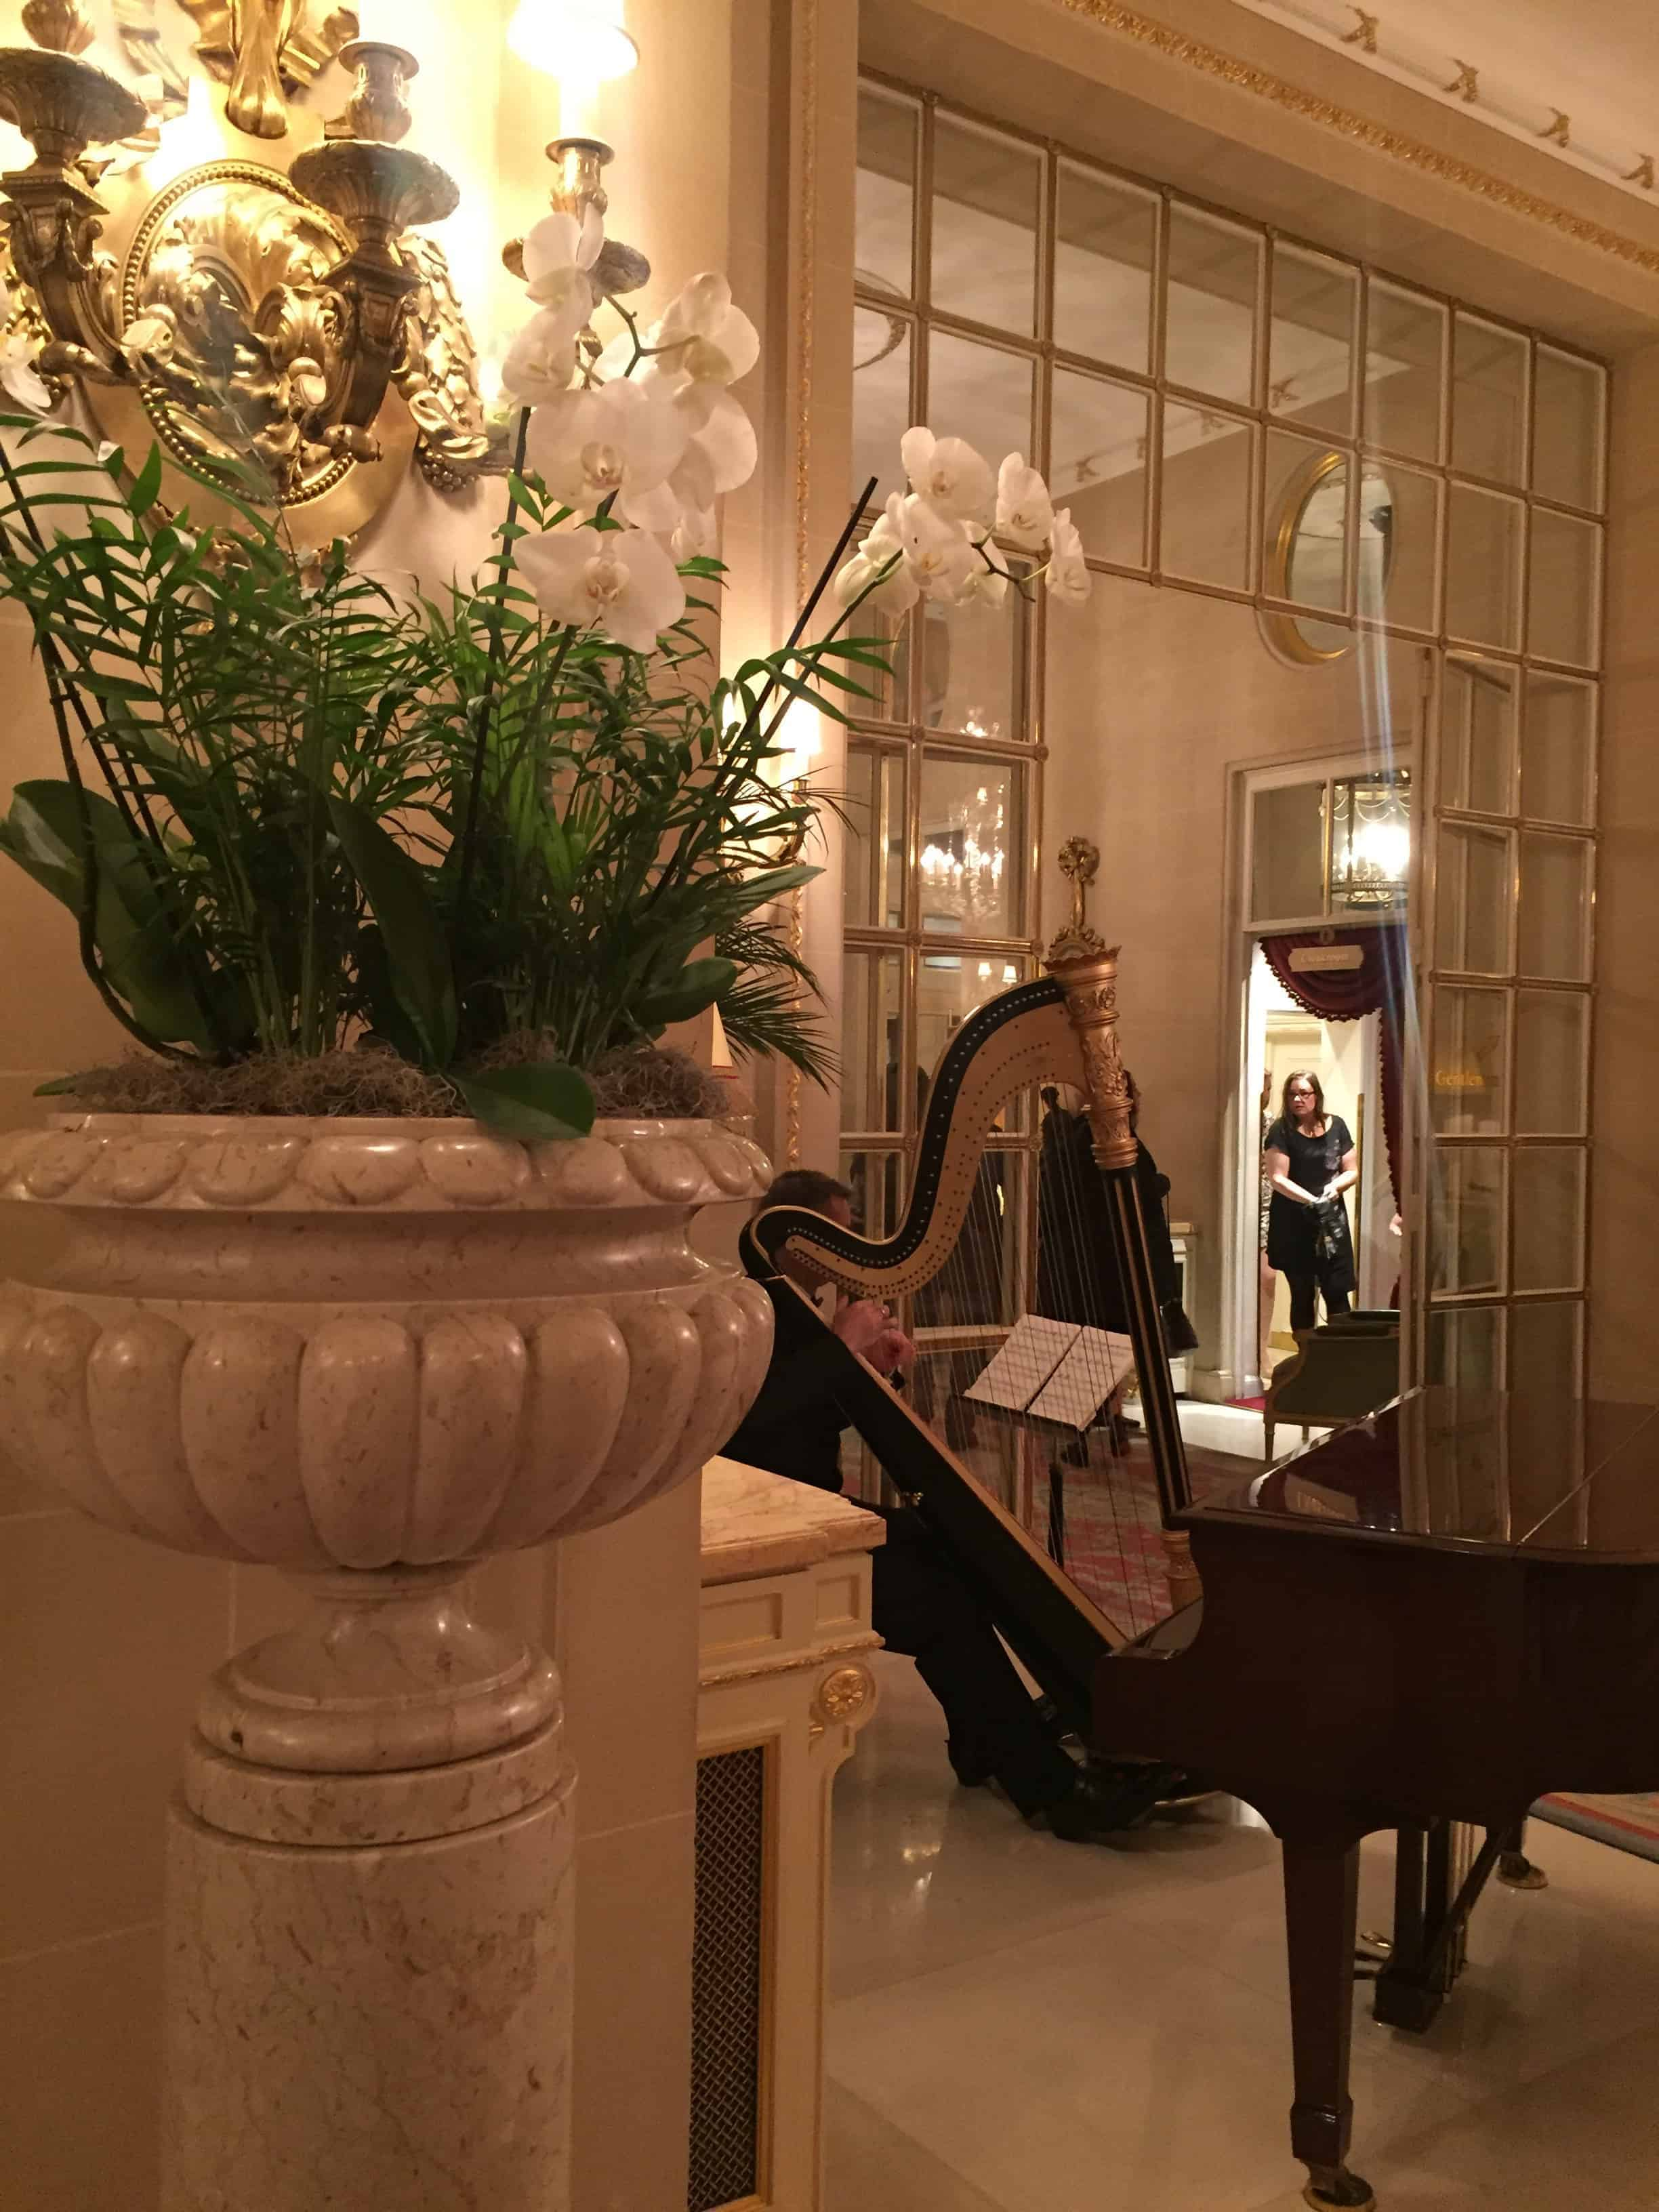 The Ritz Hotel Restaurant in Piccadilly